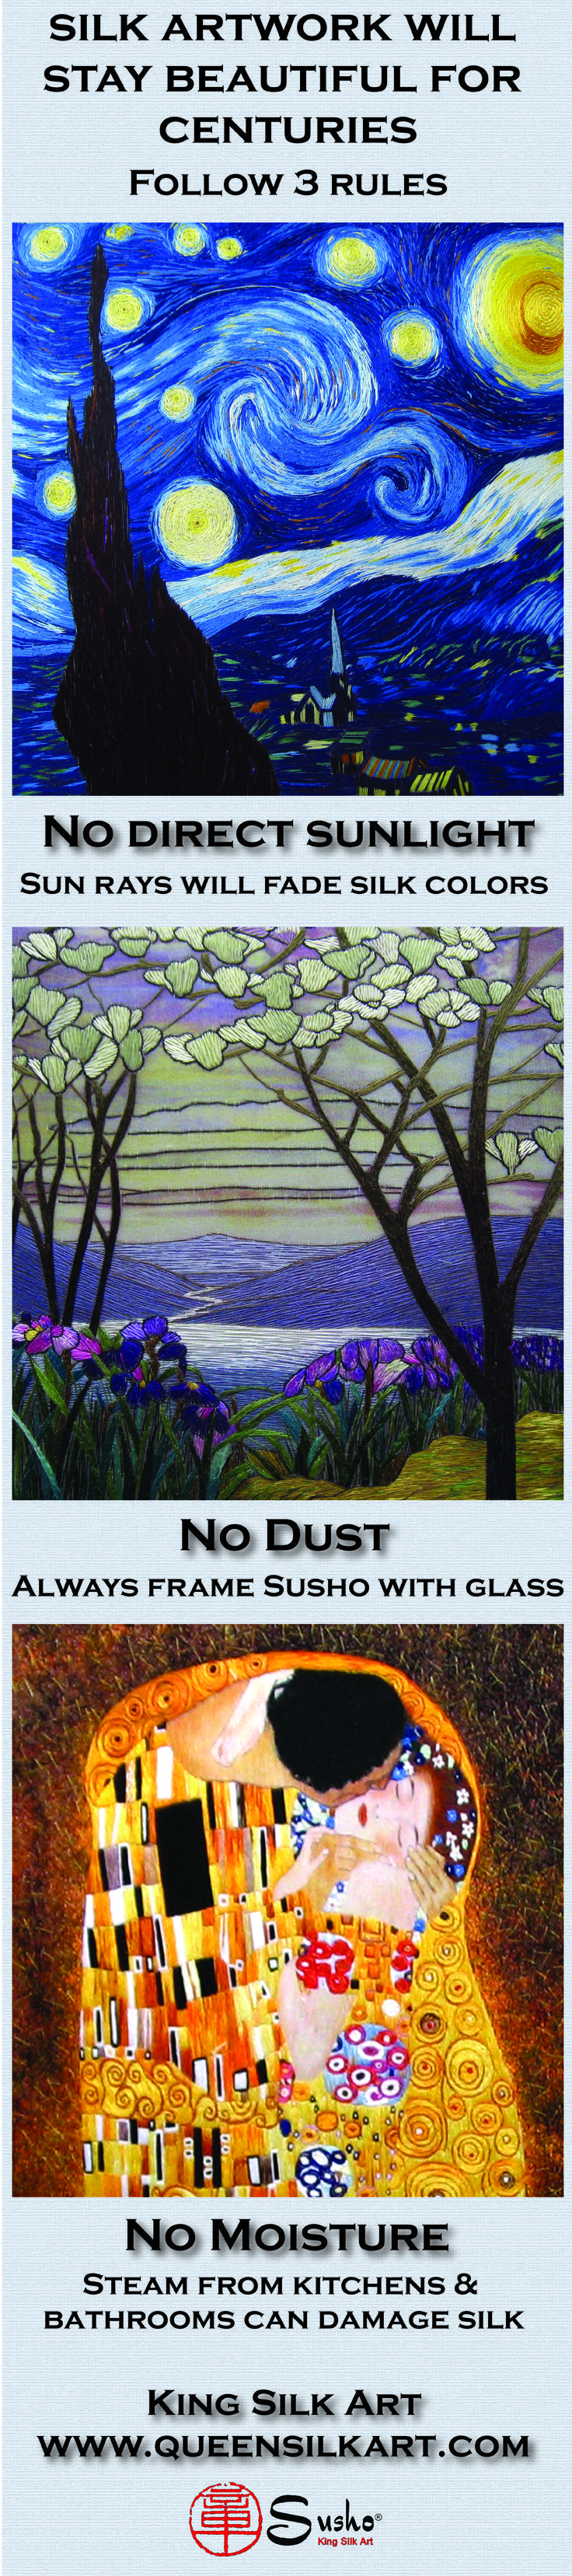 King Silk Art makes silk embroidery wall art, completely hand-stitched by Master Artists in Suzhou, China. Asian #decor for Feng Shui, #Gifts & #Art Collectors. #Handmade http://www.queensilkart.com/categories/Designer-Gallery/